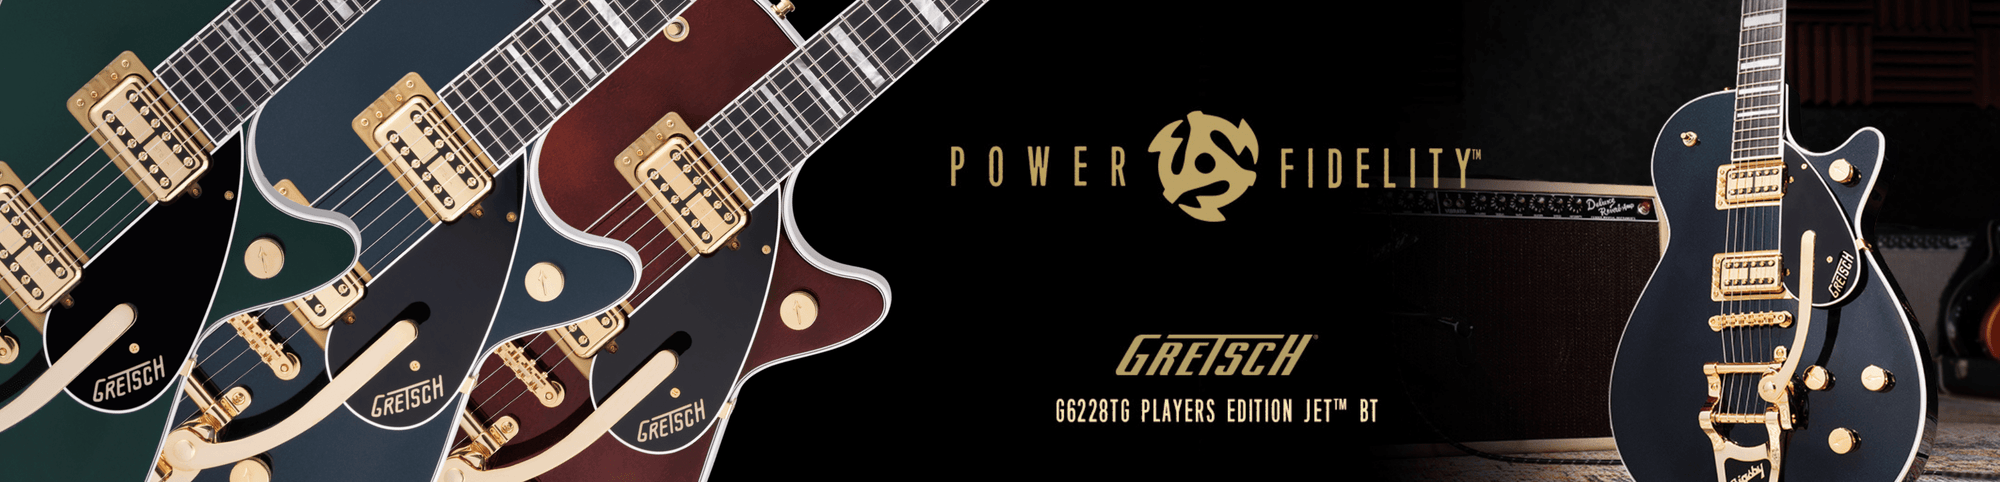 JUST ANNOUNCED: The all new Gretsch G6228TG Players Edition Jets.